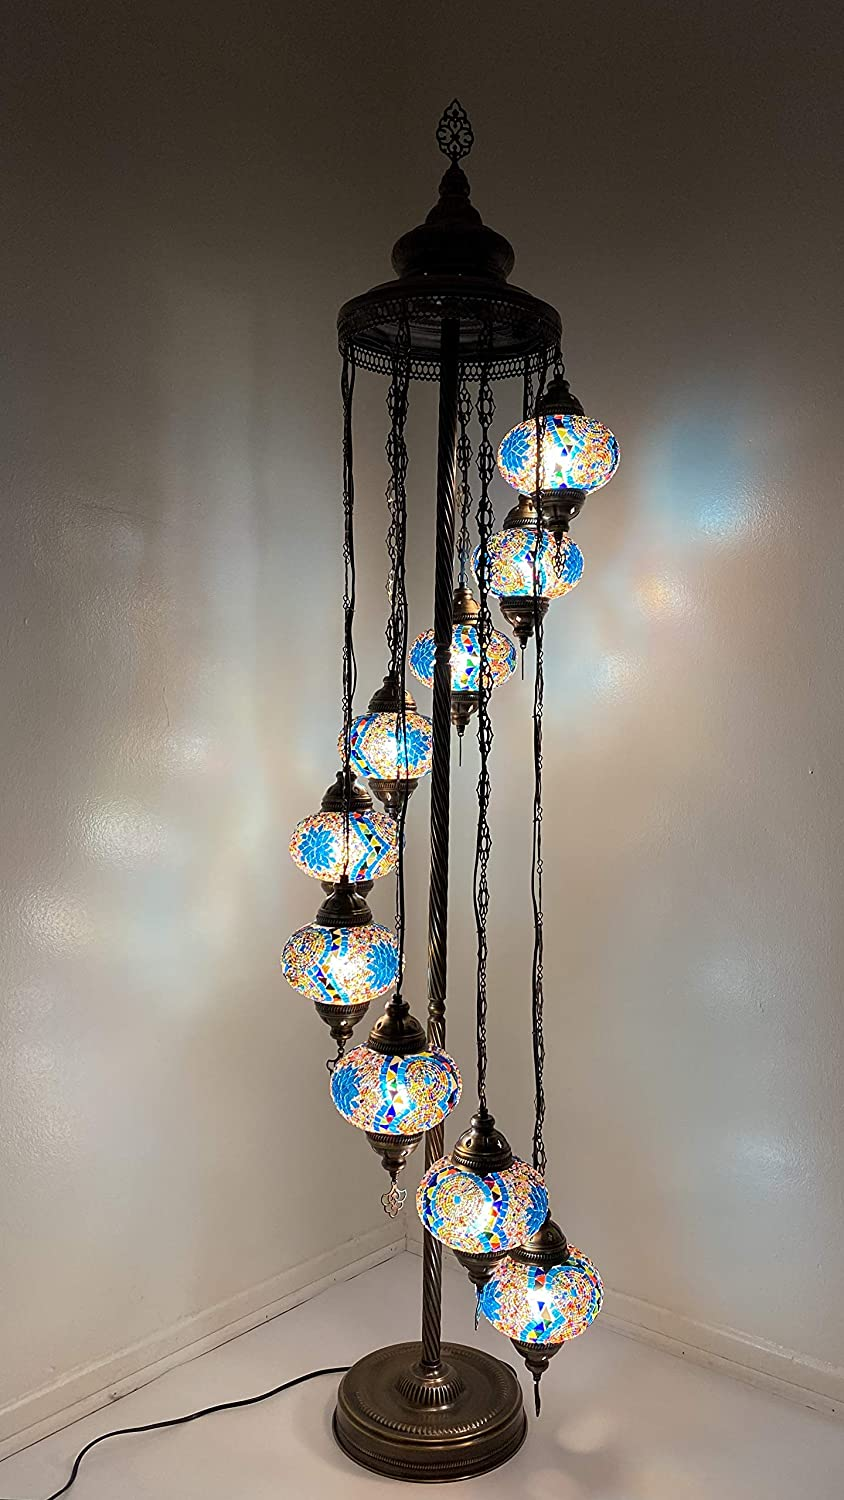 Tiffany Style Mosaic Floor Lamp with Large 9 Globes and Vintage Bronze Frame - Perfect fit for Christmas Lighting (Sky Blue)